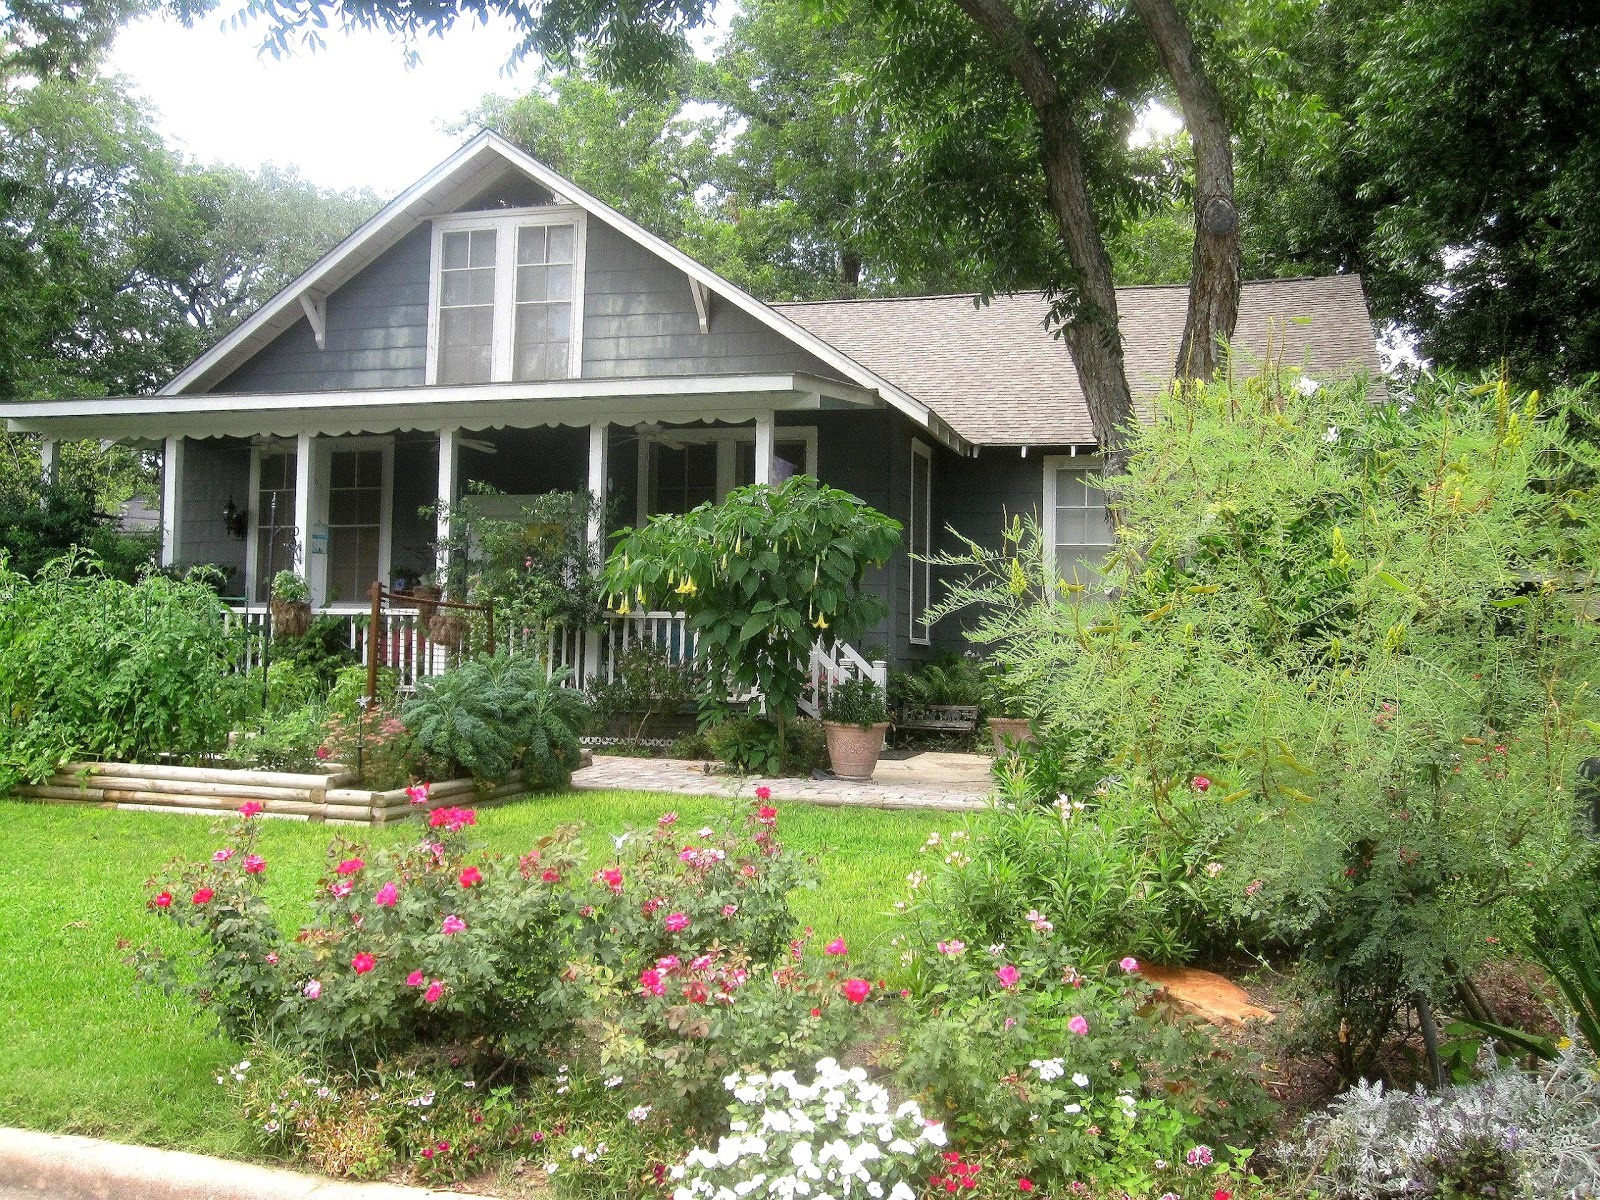 The other houston bungalow front yard garden ideas for Front garden ideas